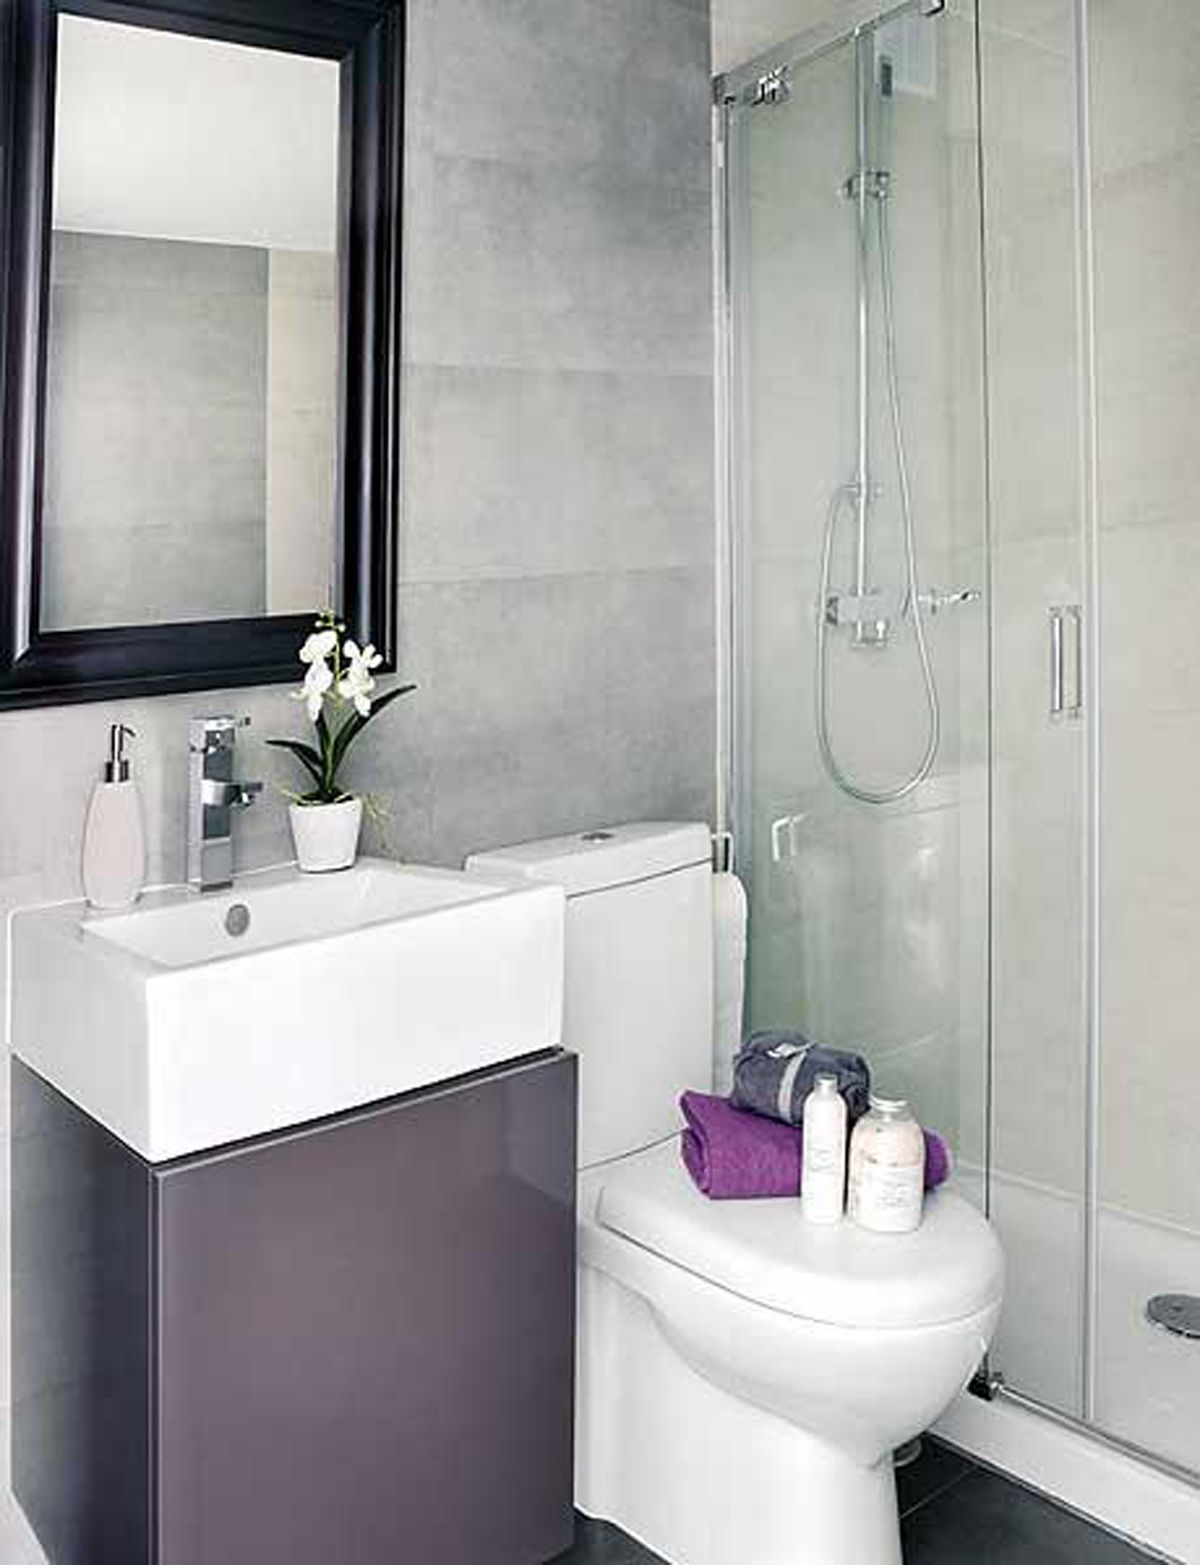 Intrinsic Interior Design Applied In Small Apartment Architecture - Purple bathroom decor for small bathroom ideas